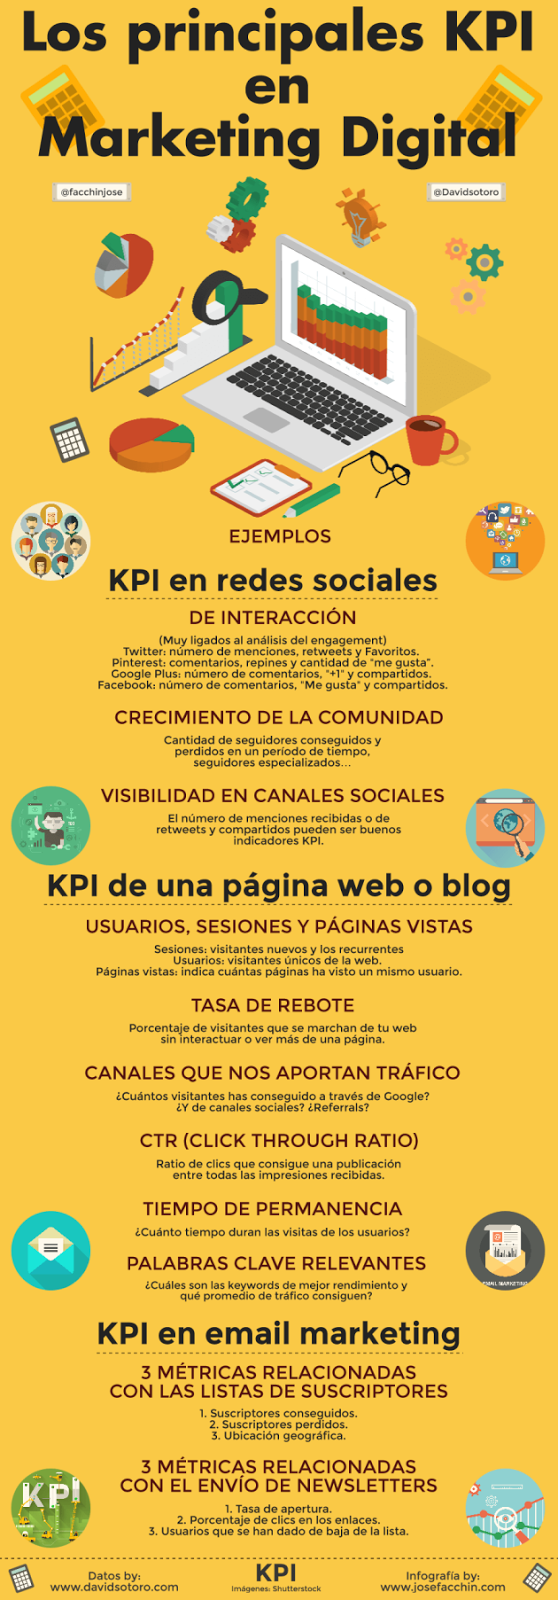 Los principales KPI en Marketing Digital